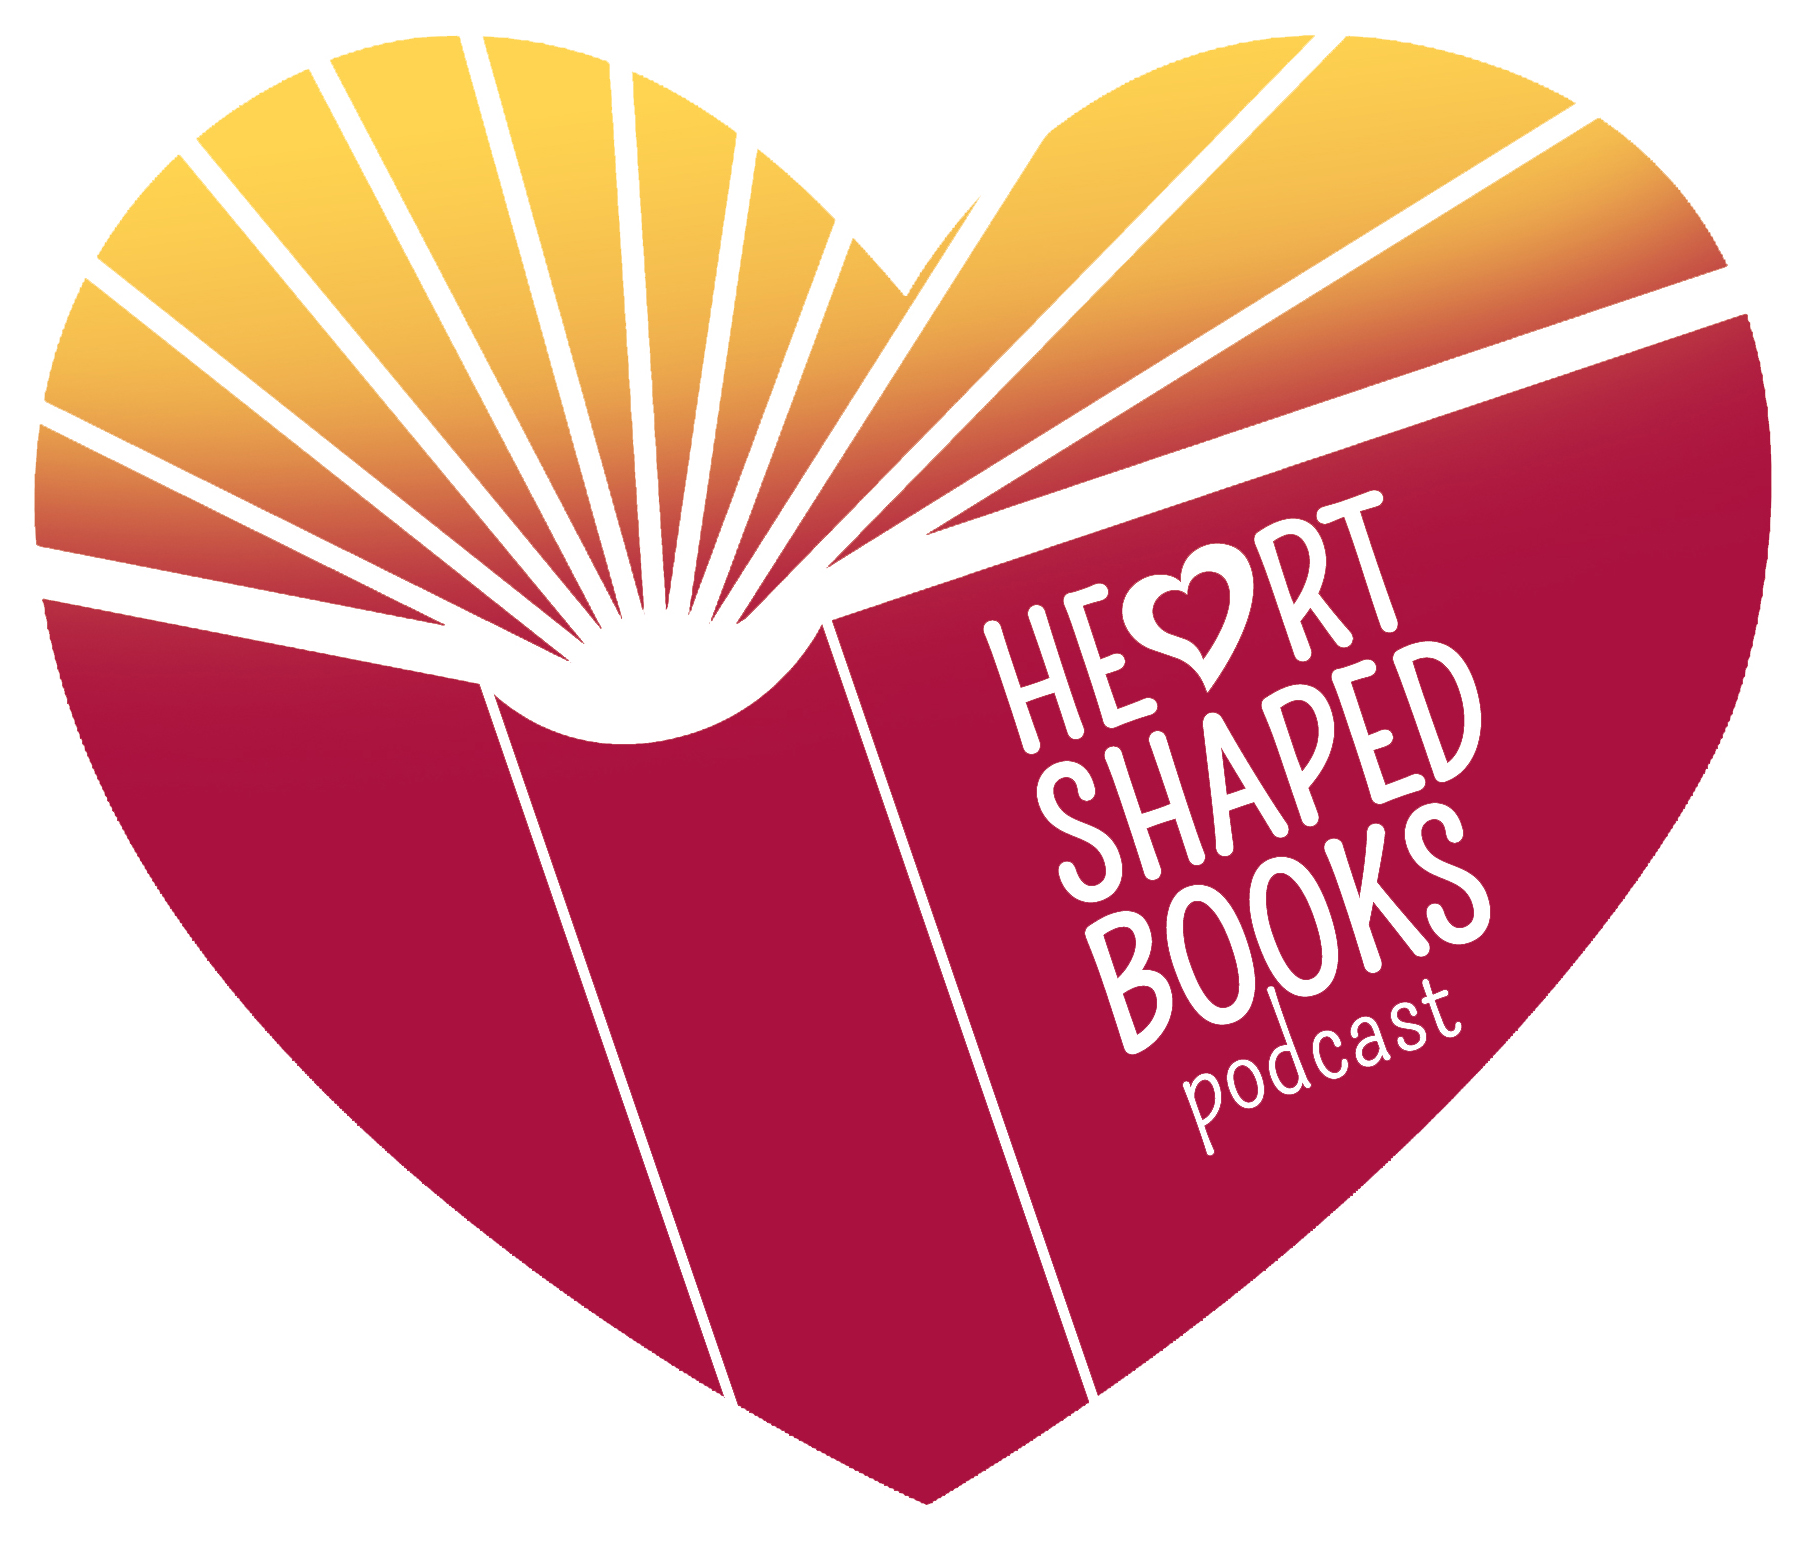 The Heart-Shaped Books Podcast show art